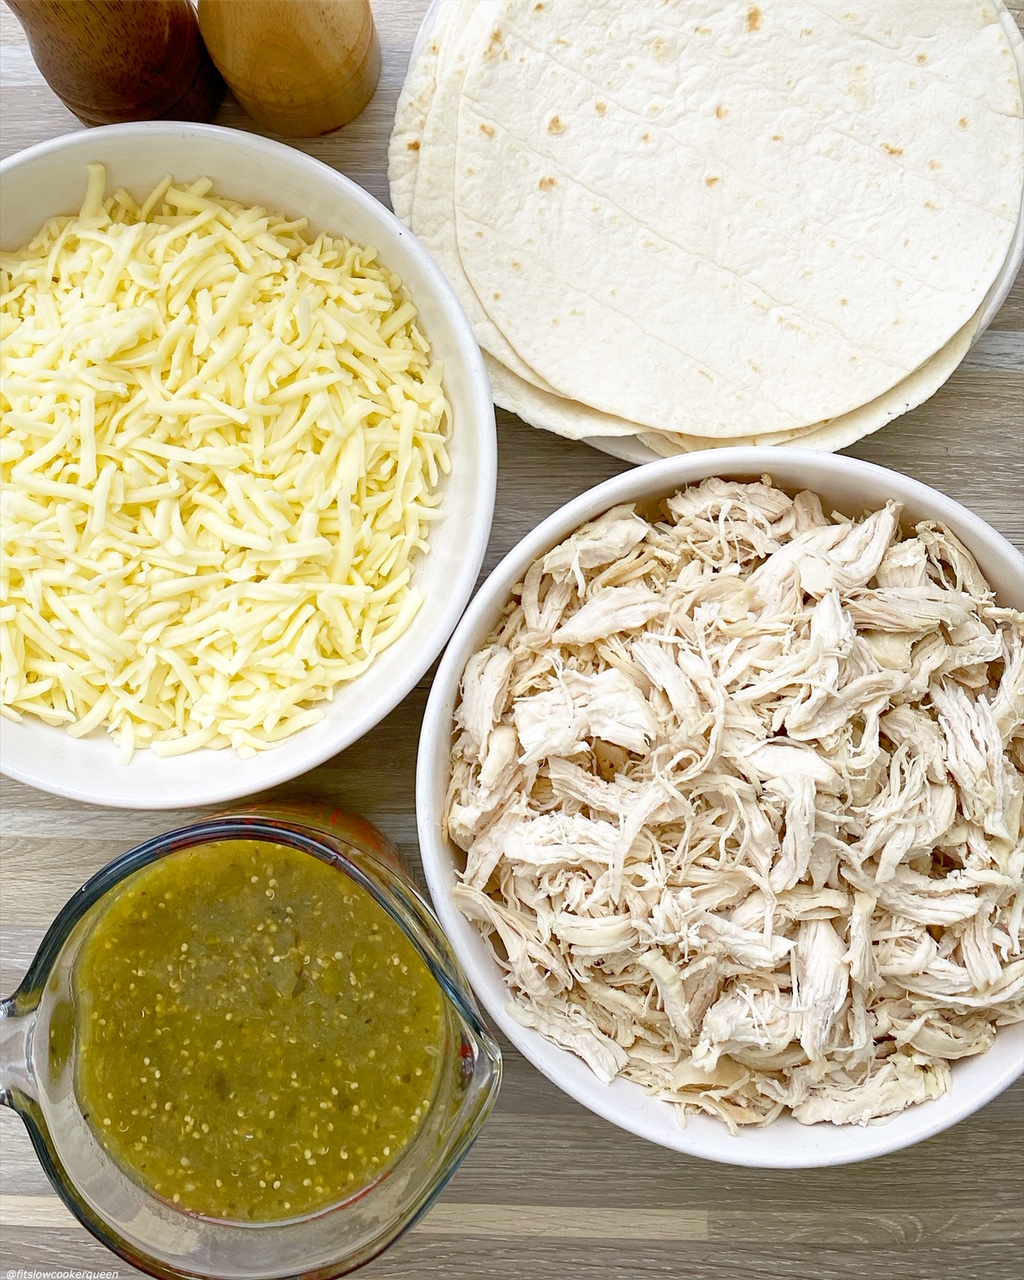 ingredients for {VIDEO} Slow Cooker Salsa Verde Chicken Casserole (Low-Carb) layed out on a table in different bowls